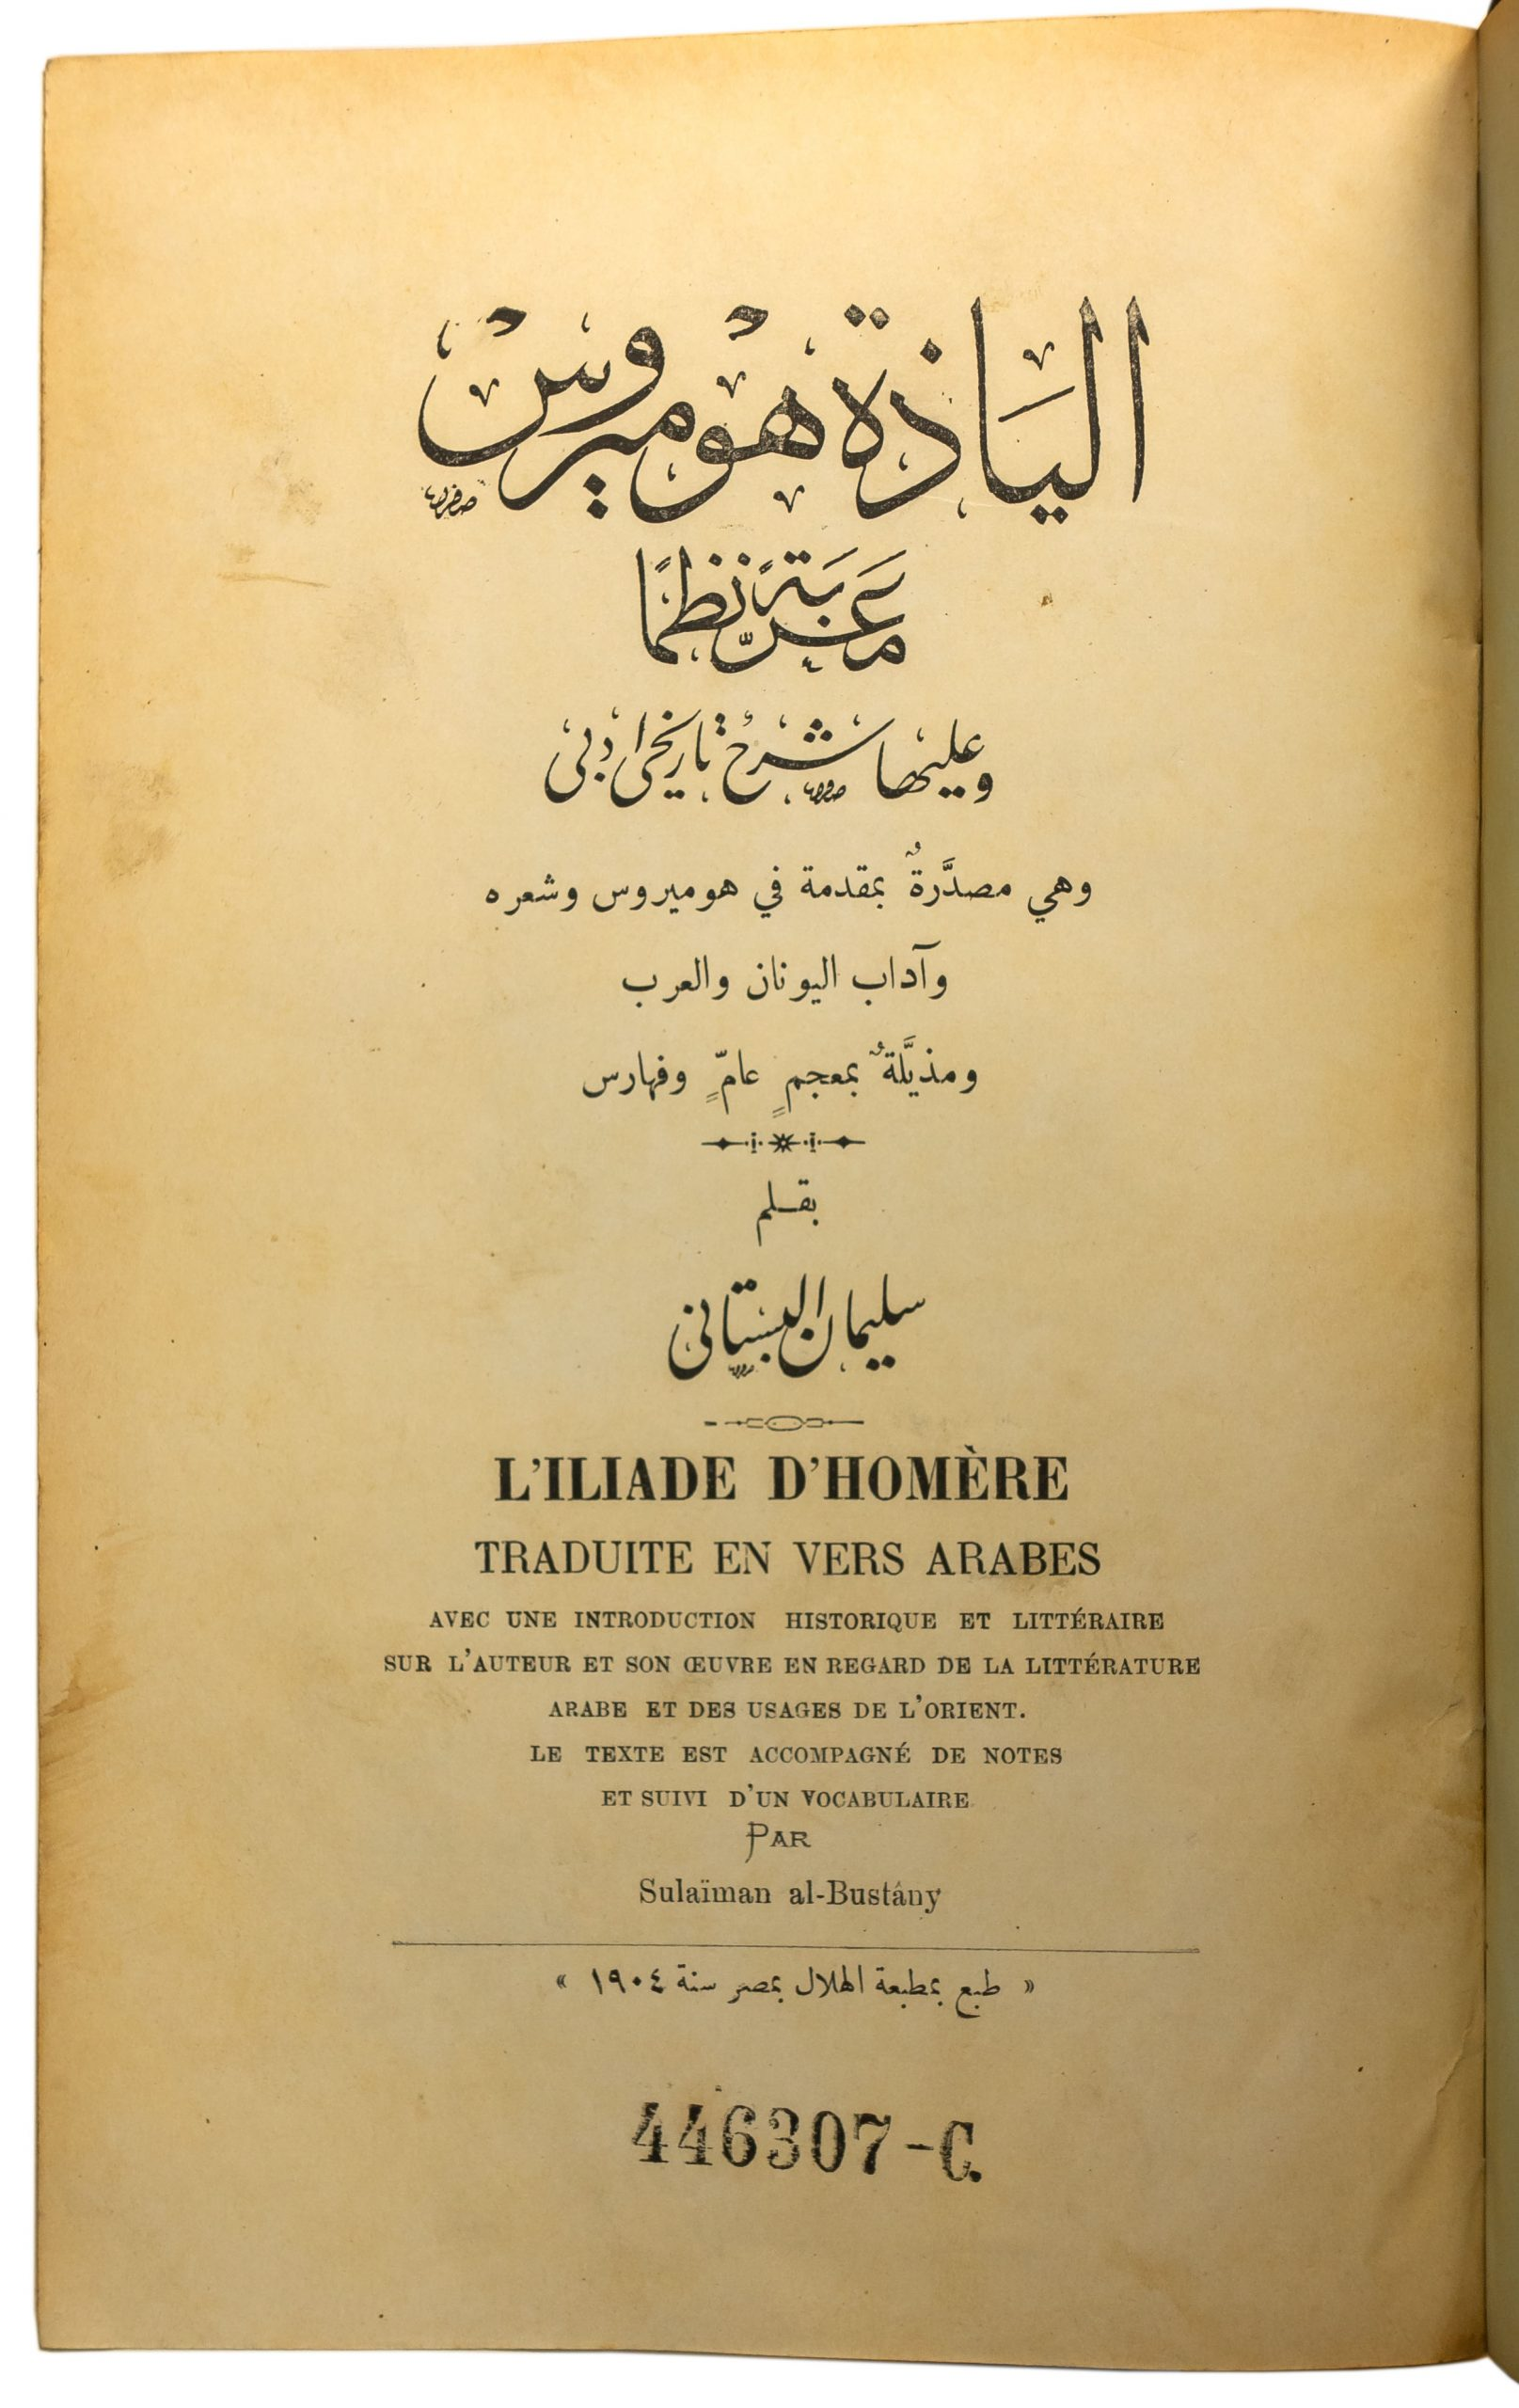 Ilyadah Humirus, title page, courtesy of the Austrian National Library, 446307-C, http://data.onb.ac.at/rec/AC09967190